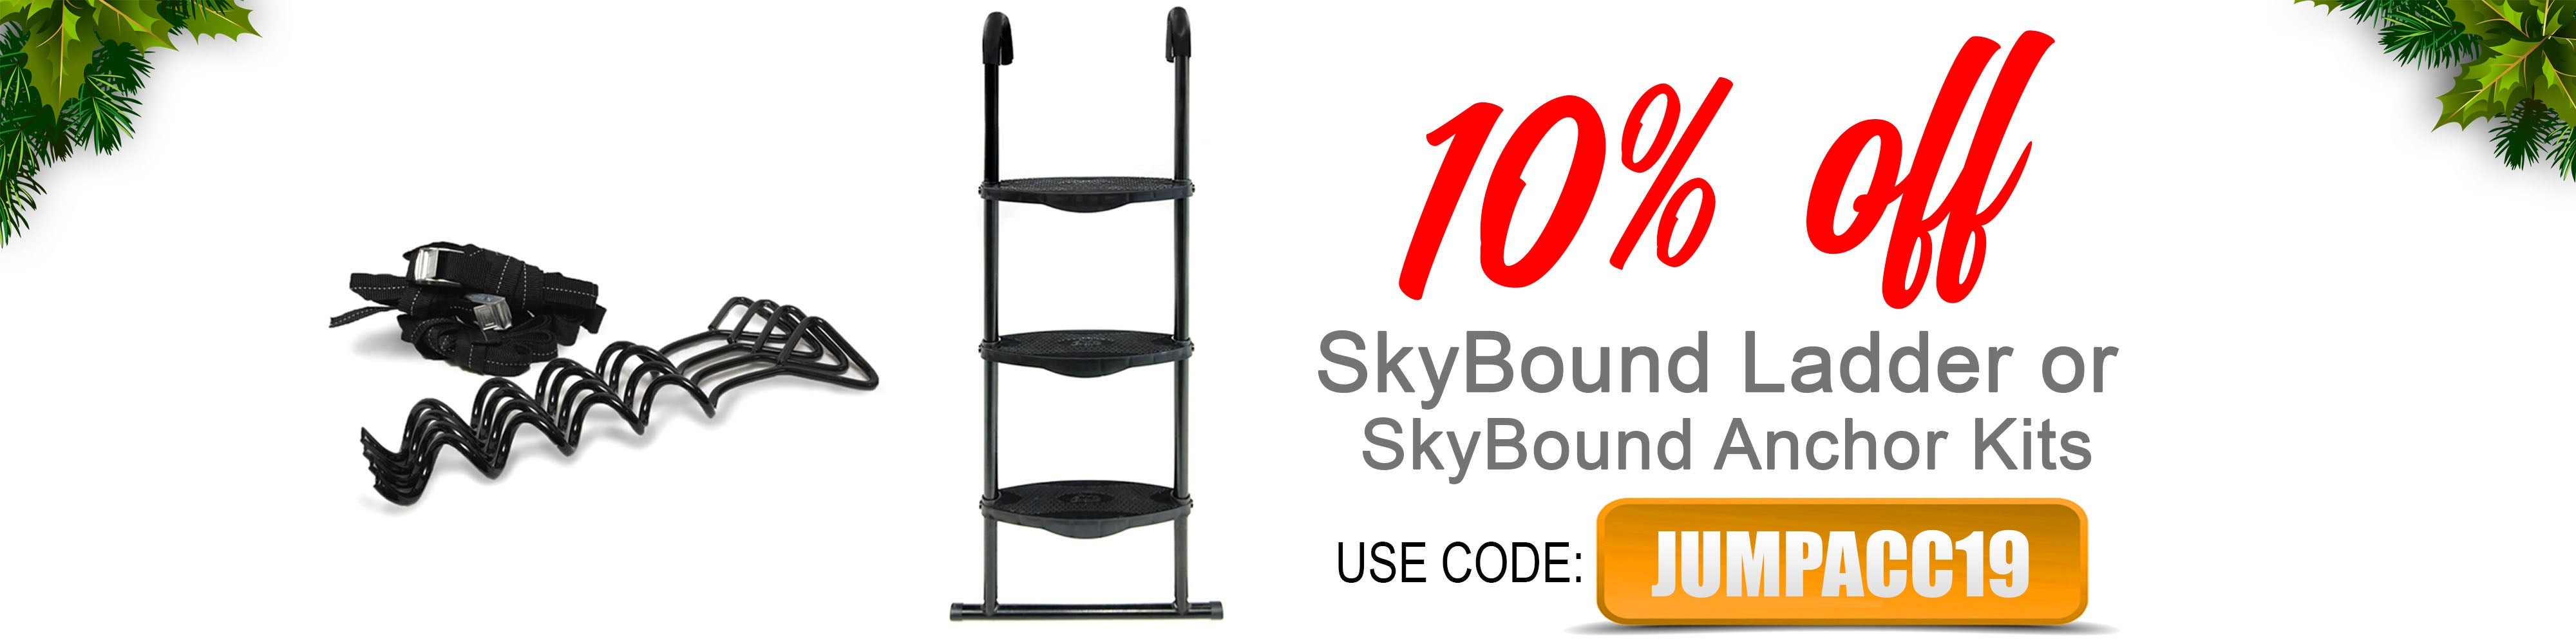 SkyBound trampolines coupon code 2019 christmas xmas holiday deals